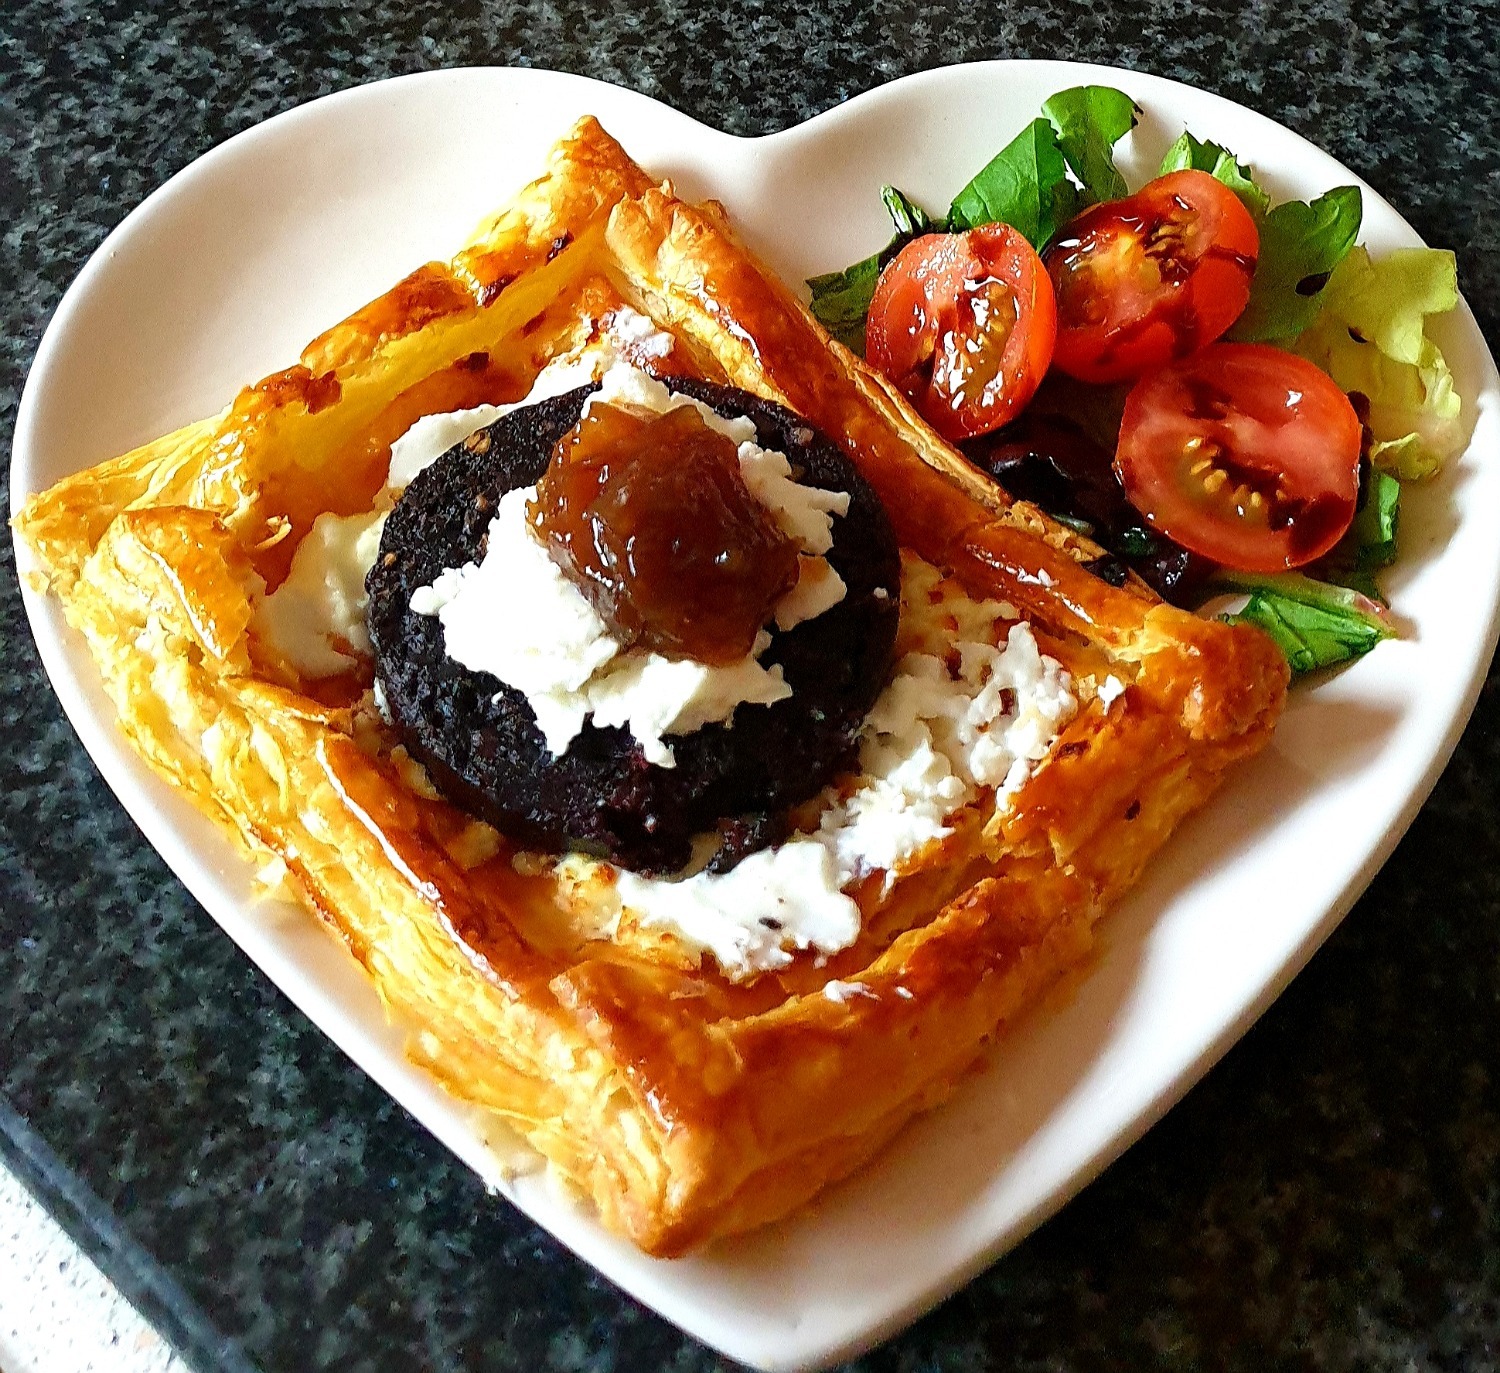 Black Pudding Tarts with Goats cheese and onion relish